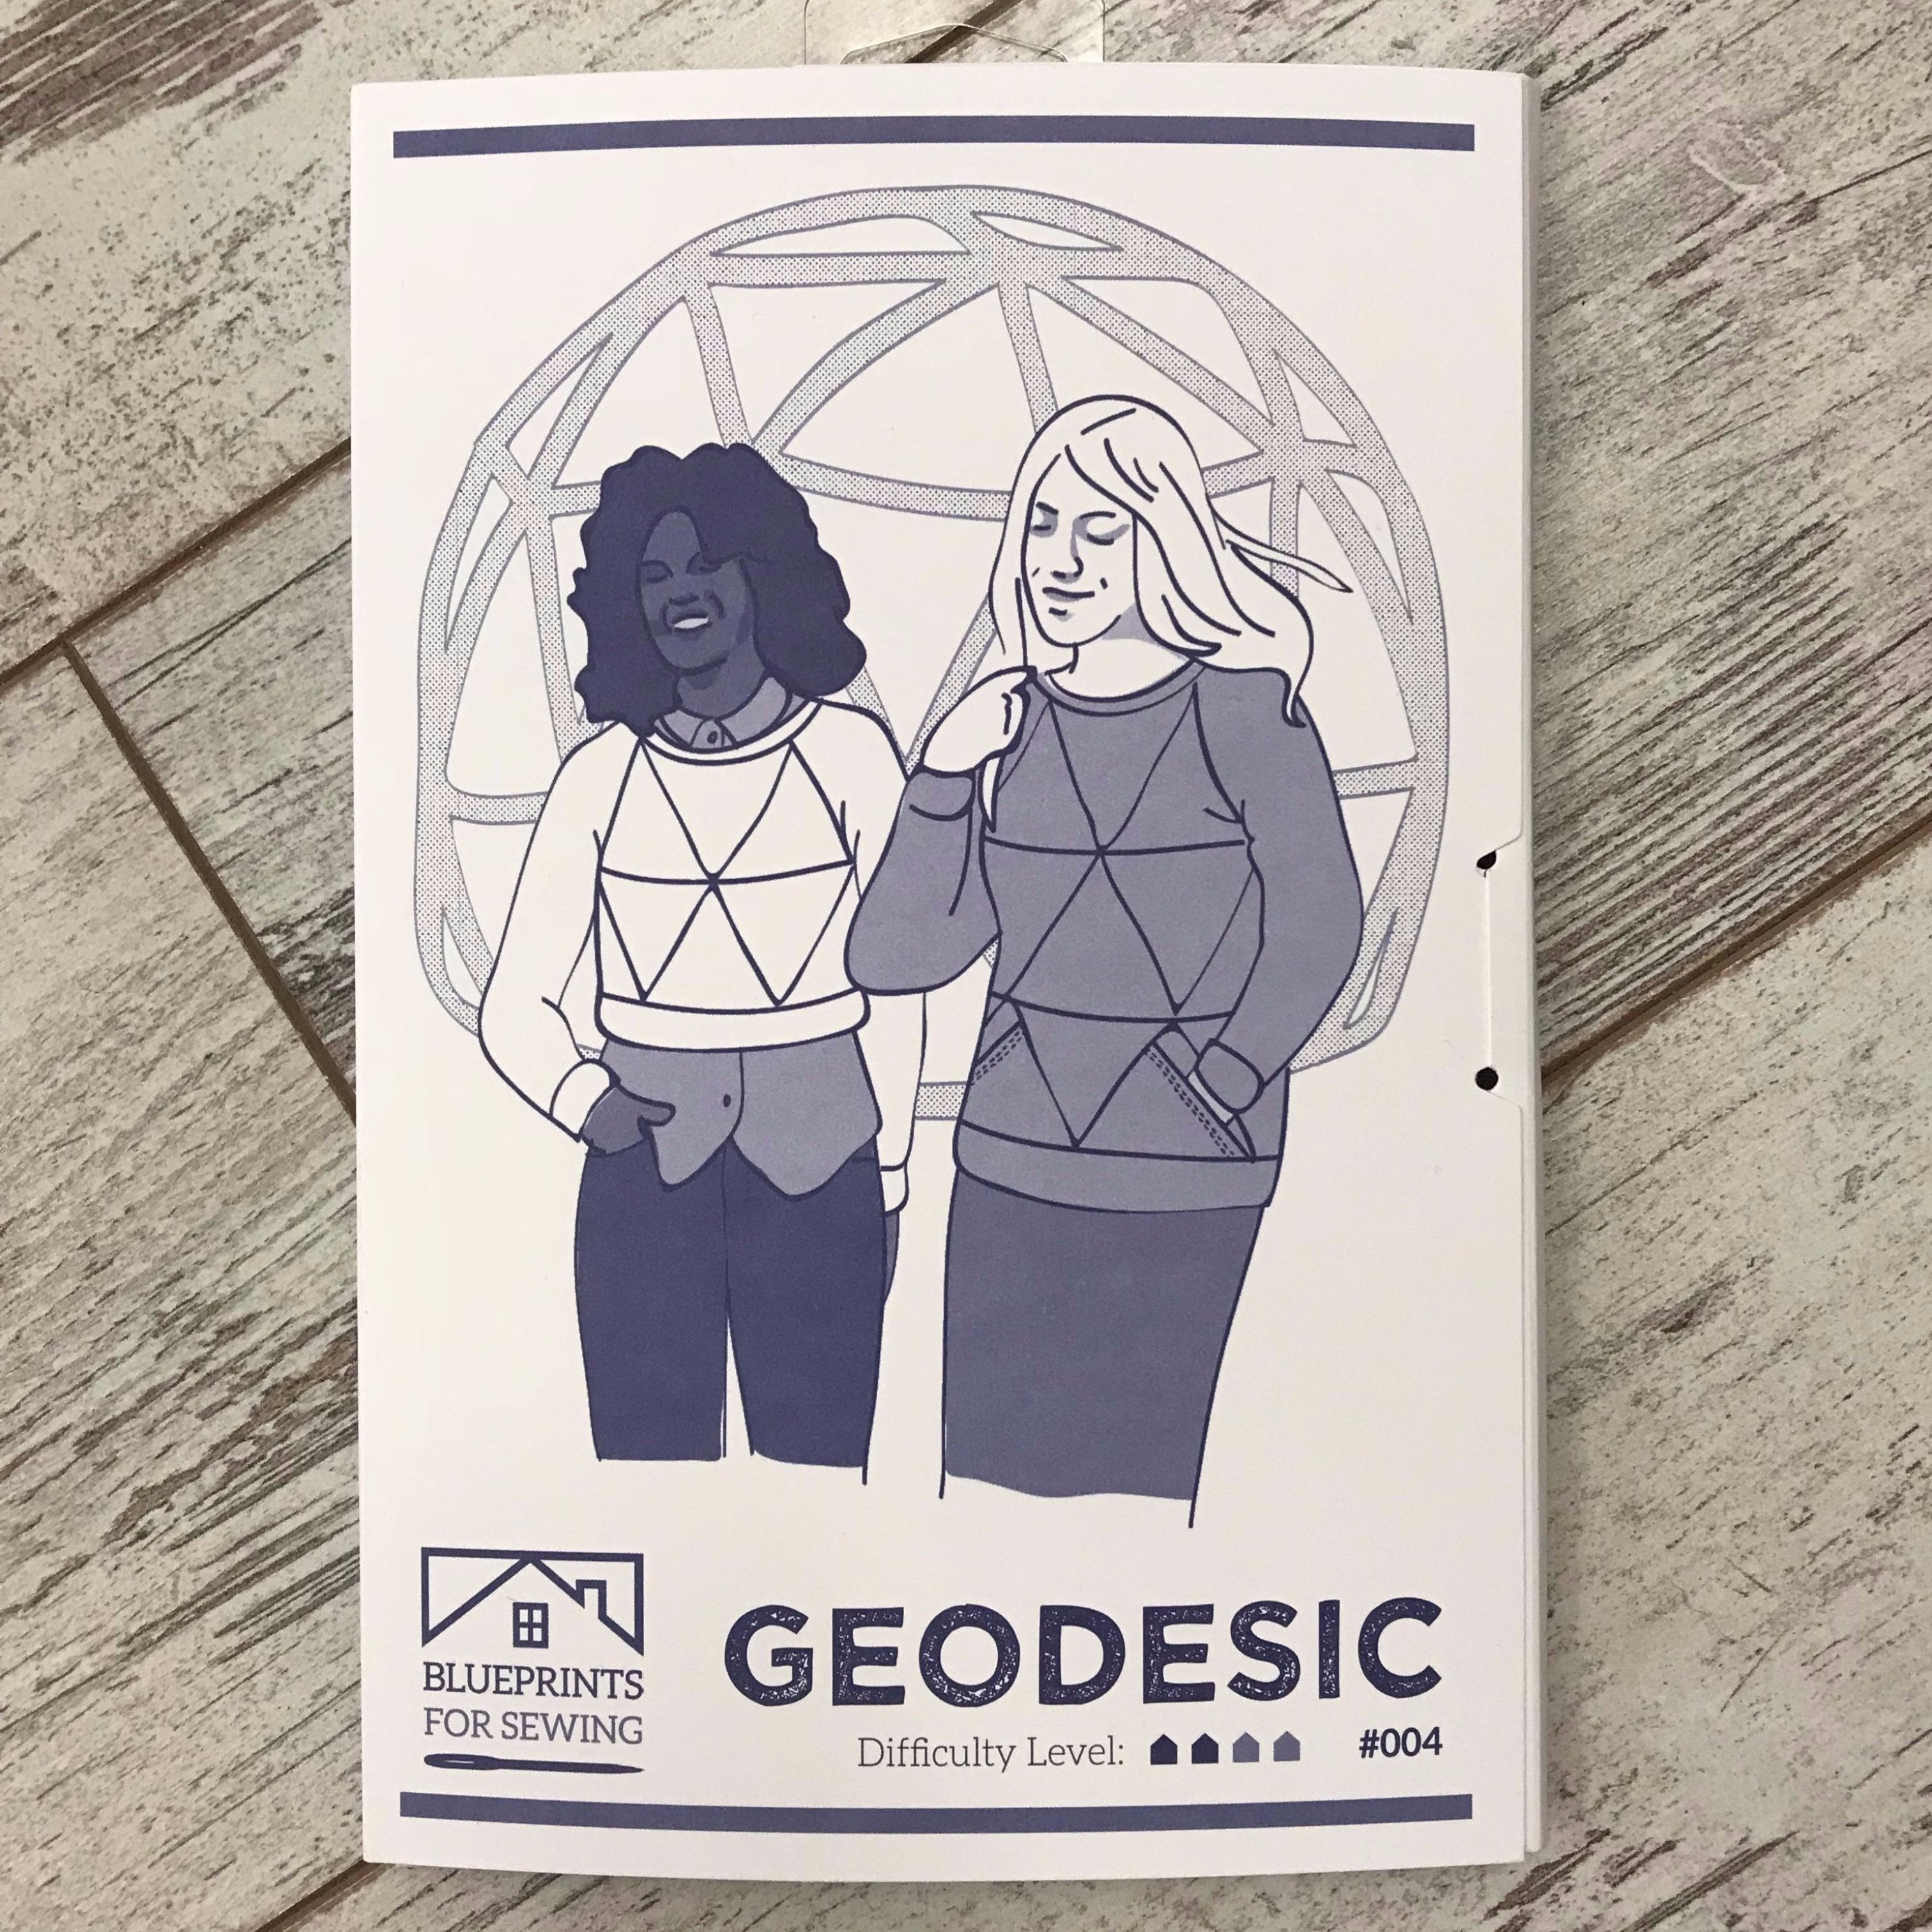 Blueprints for sewing geodesic apparel pattern the cloth pocket blueprints for sewing geodesic apparel pattern malvernweather Choice Image